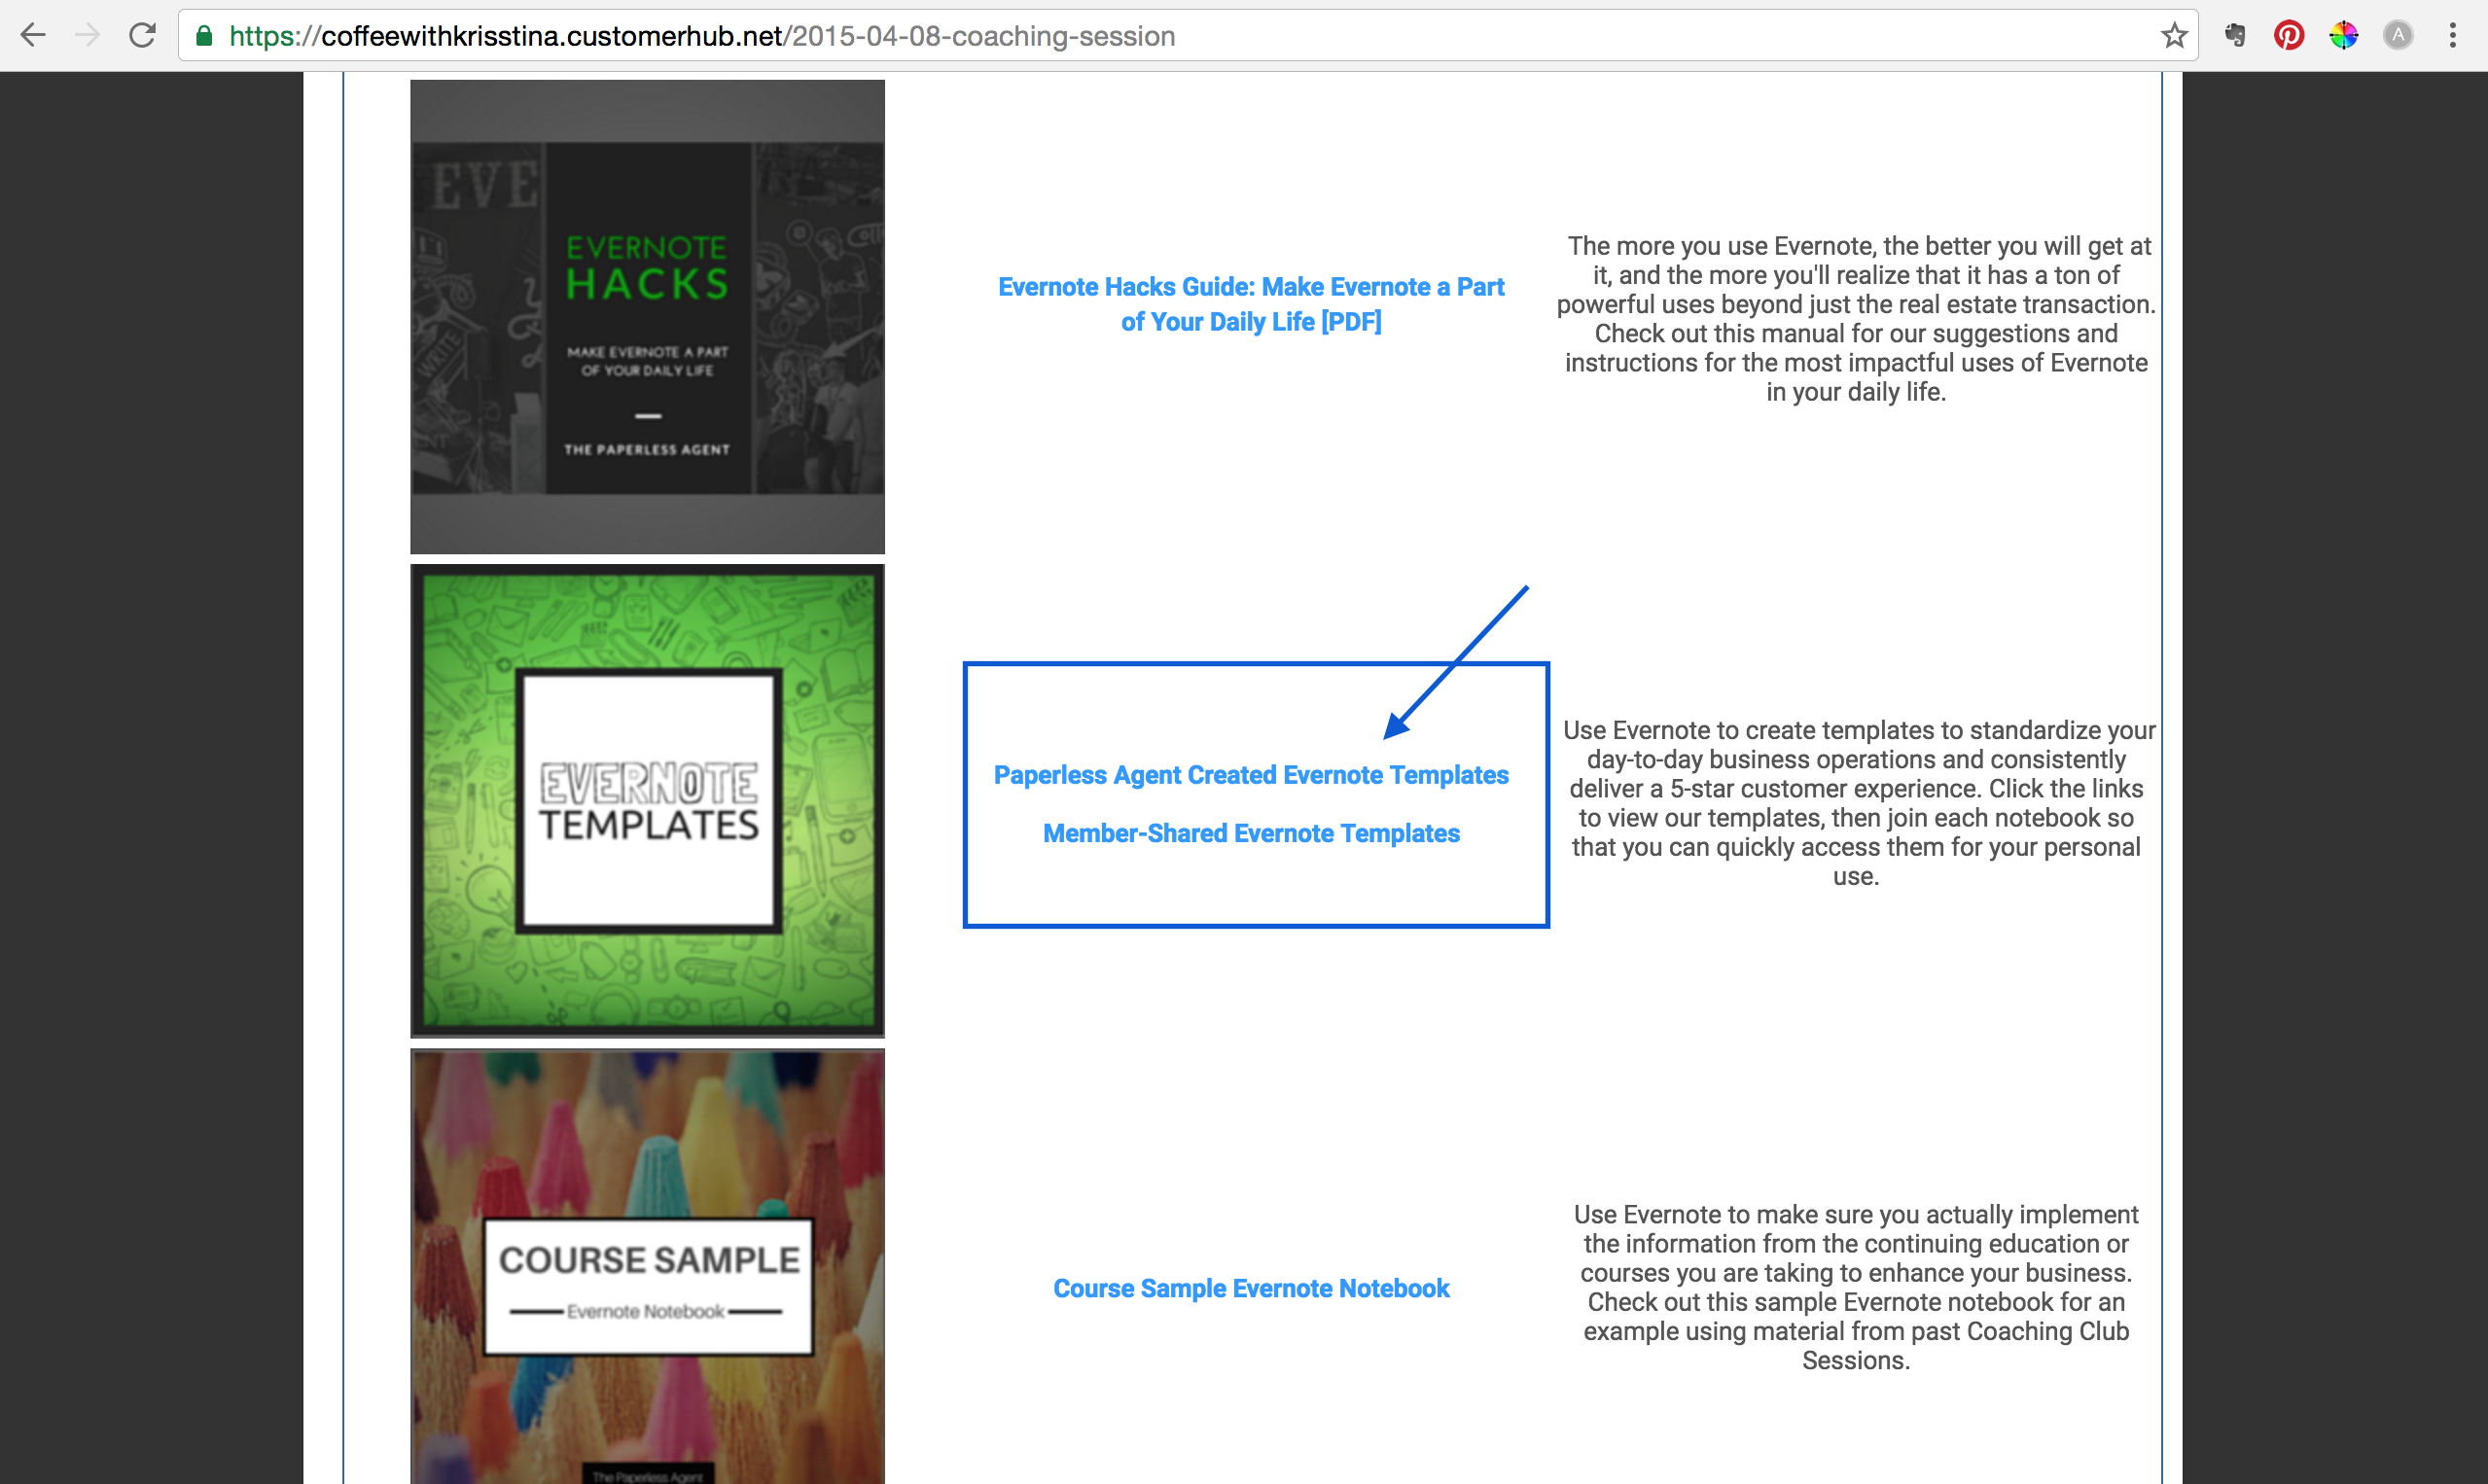 How-To Access Evernote Business Templates : The Paperless Agent